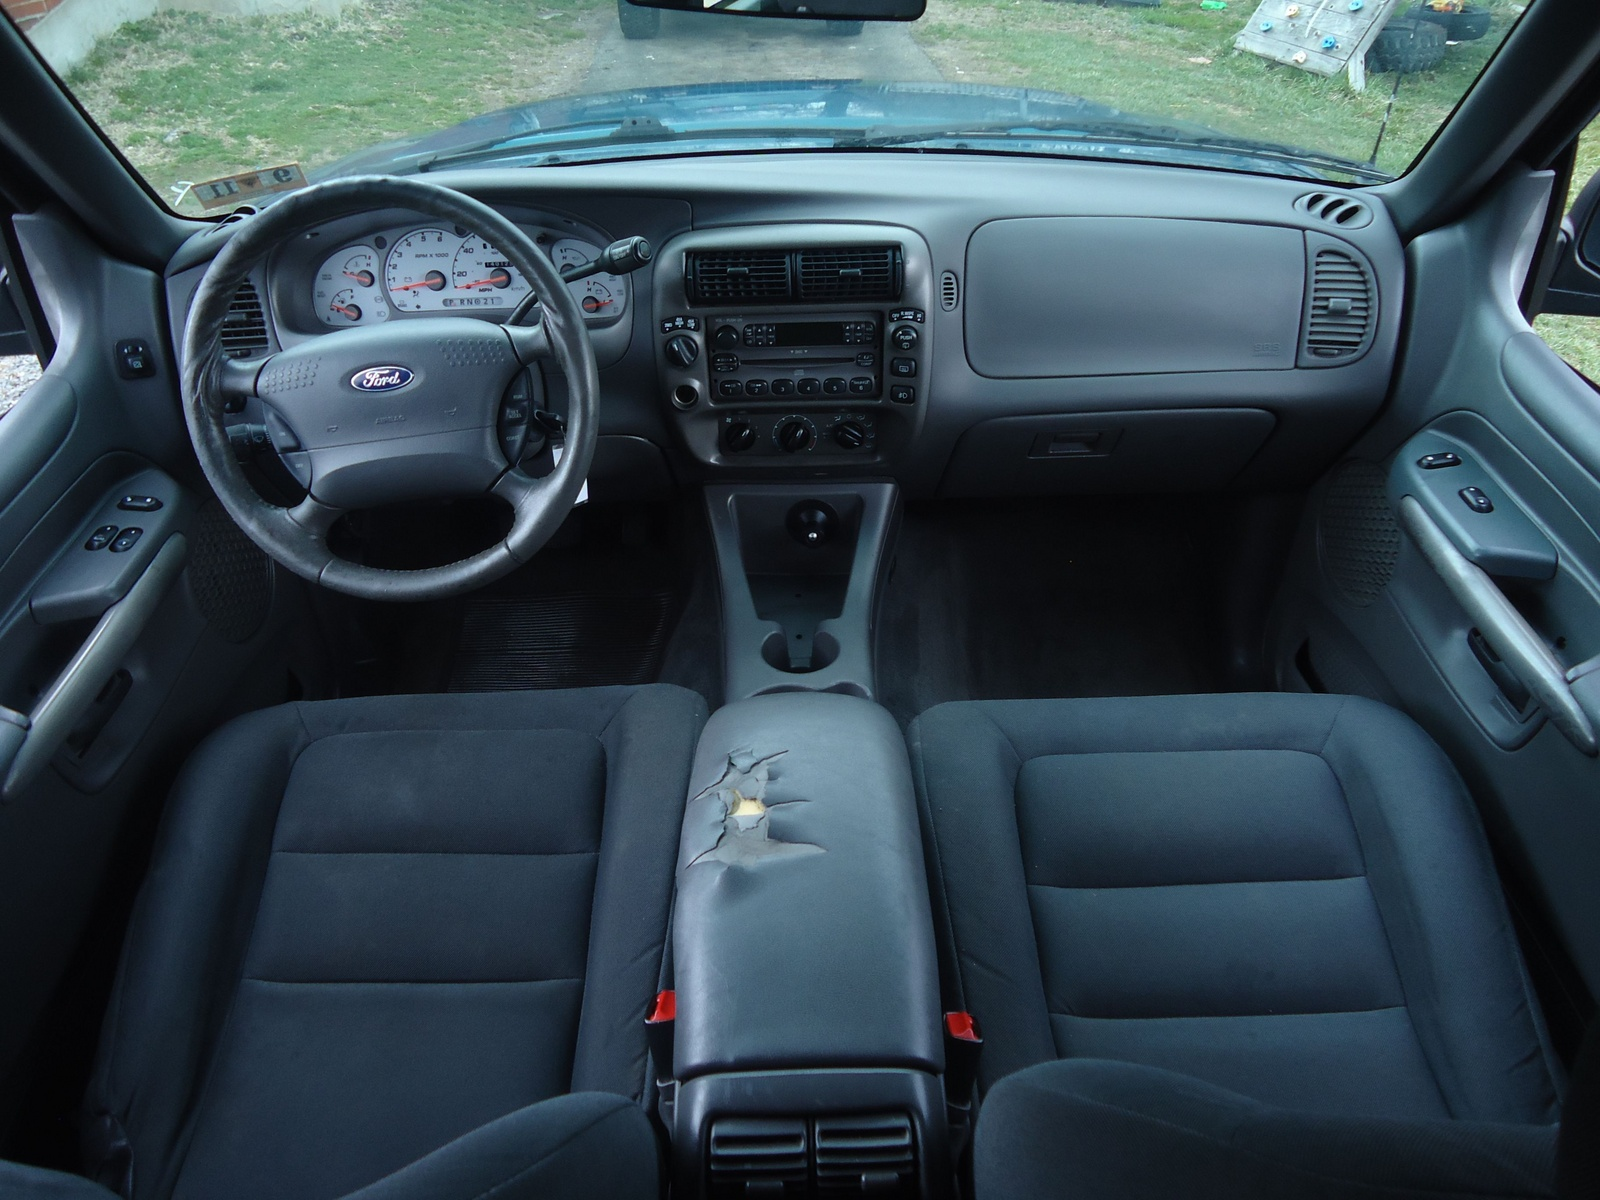 2001 ford explorer sport trac for sale car interior design - Ford explorer sport trac interior parts ...